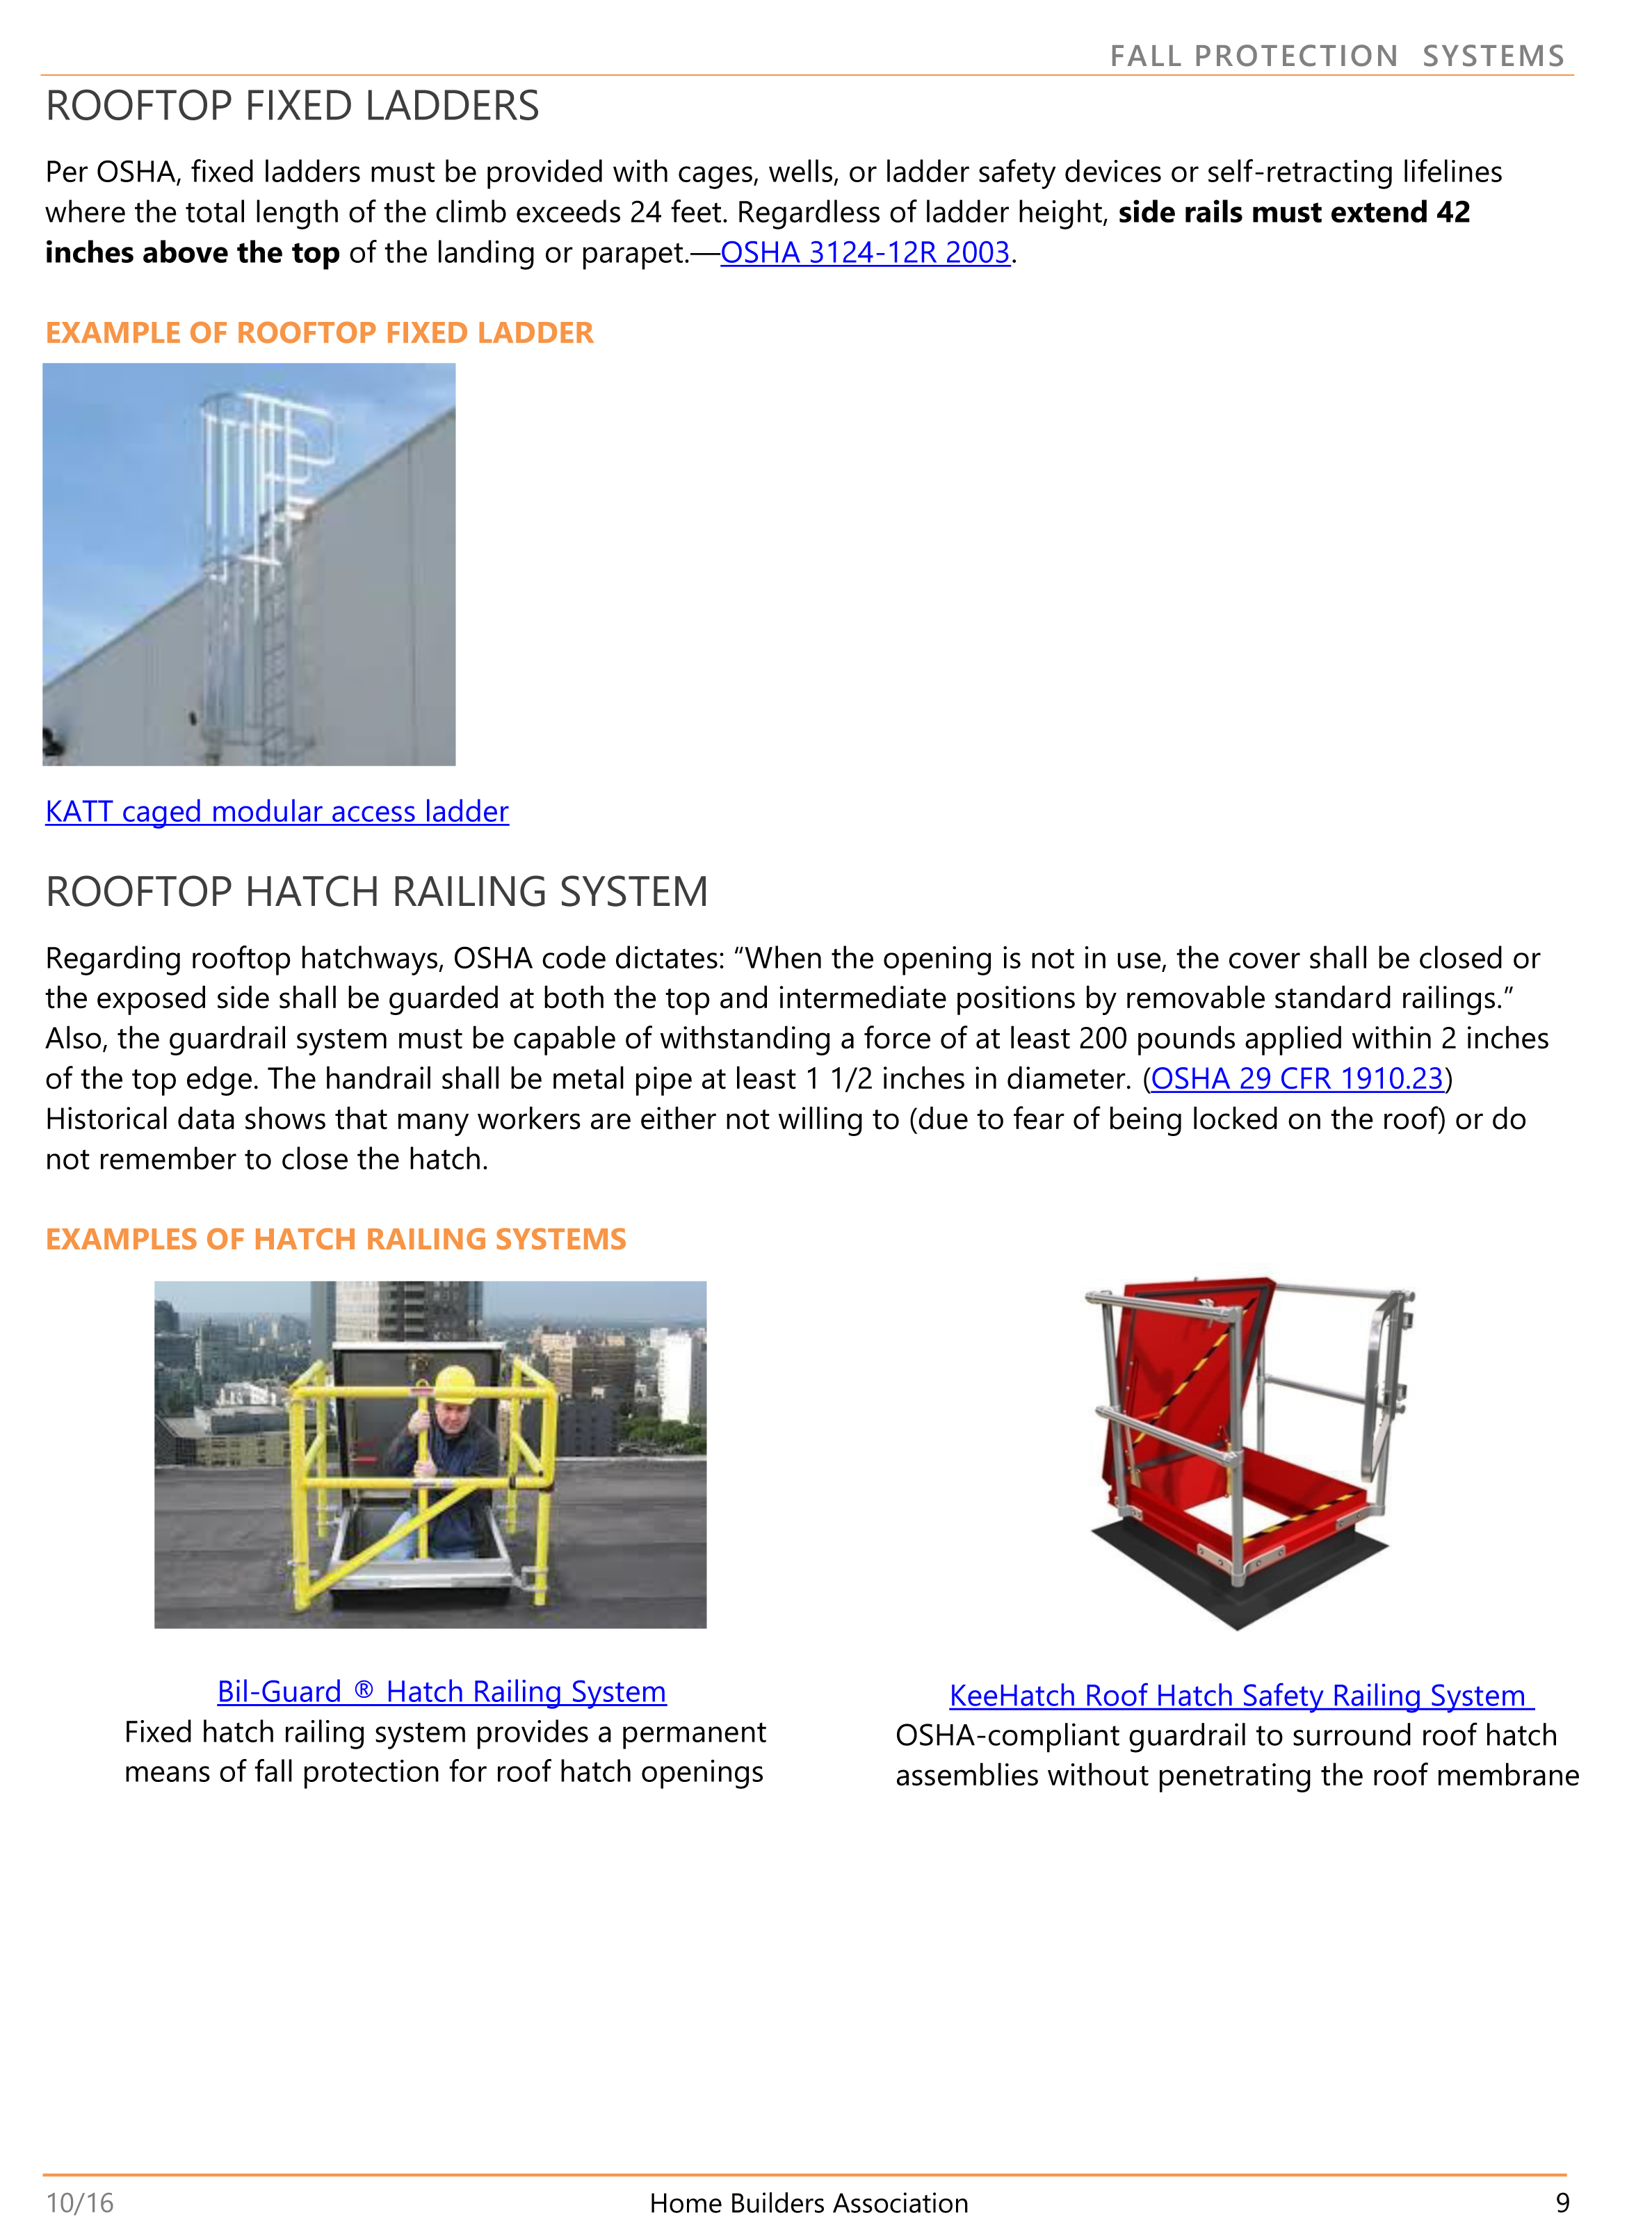 Fall Protection Guide-10